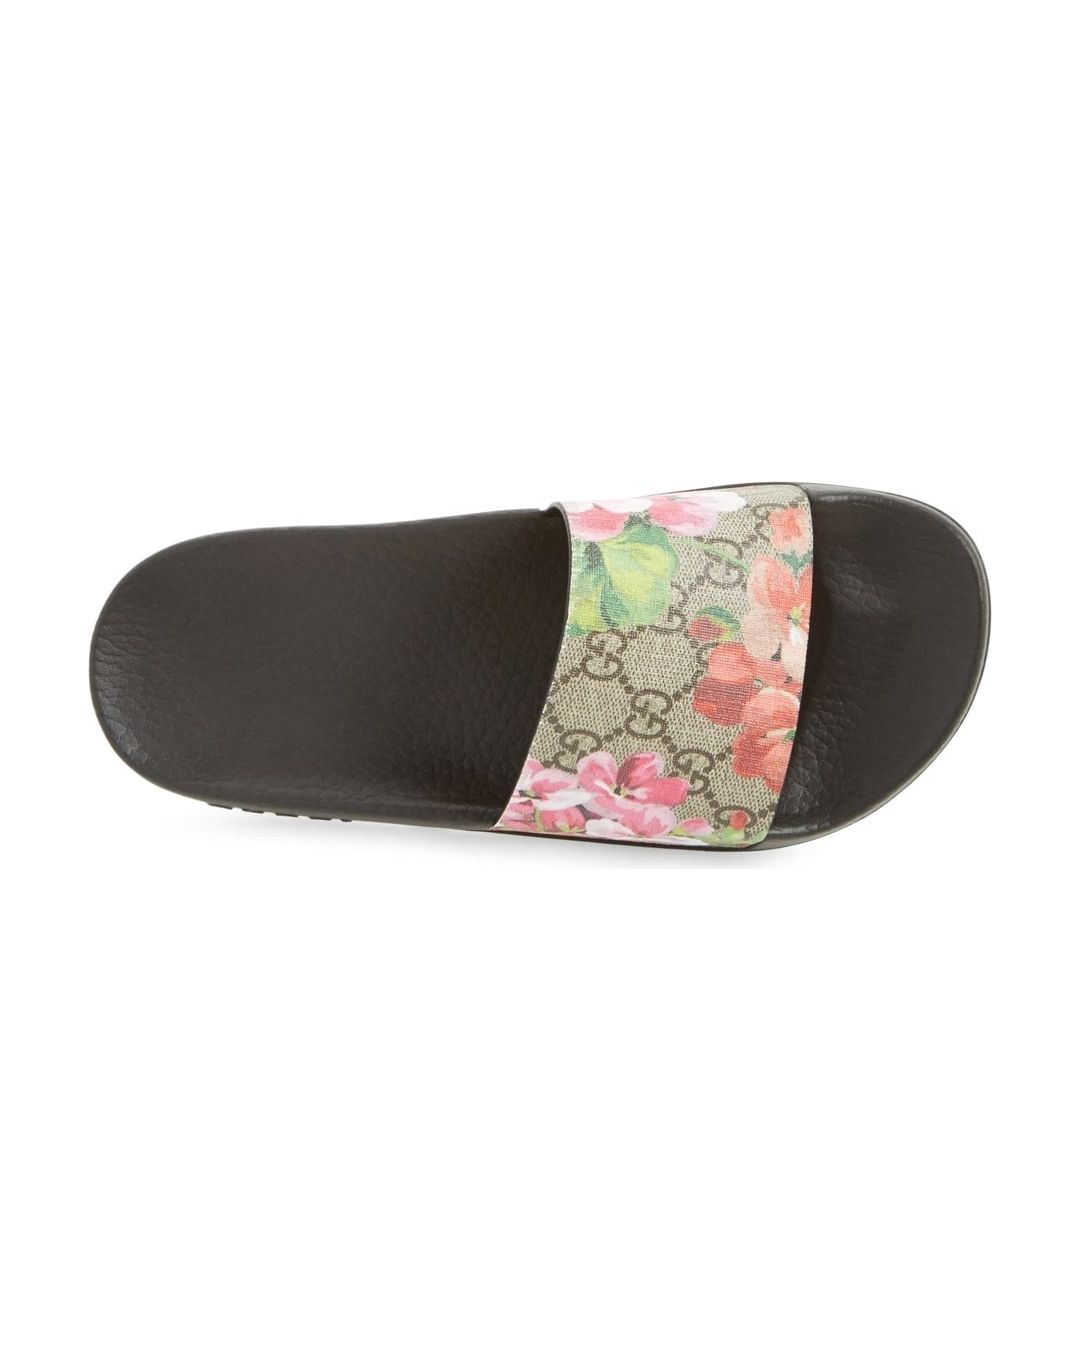 485d286c13c Where to Buy. FarFetch.com- UK. Gucci GG Blooms Supreme slide sandals ...